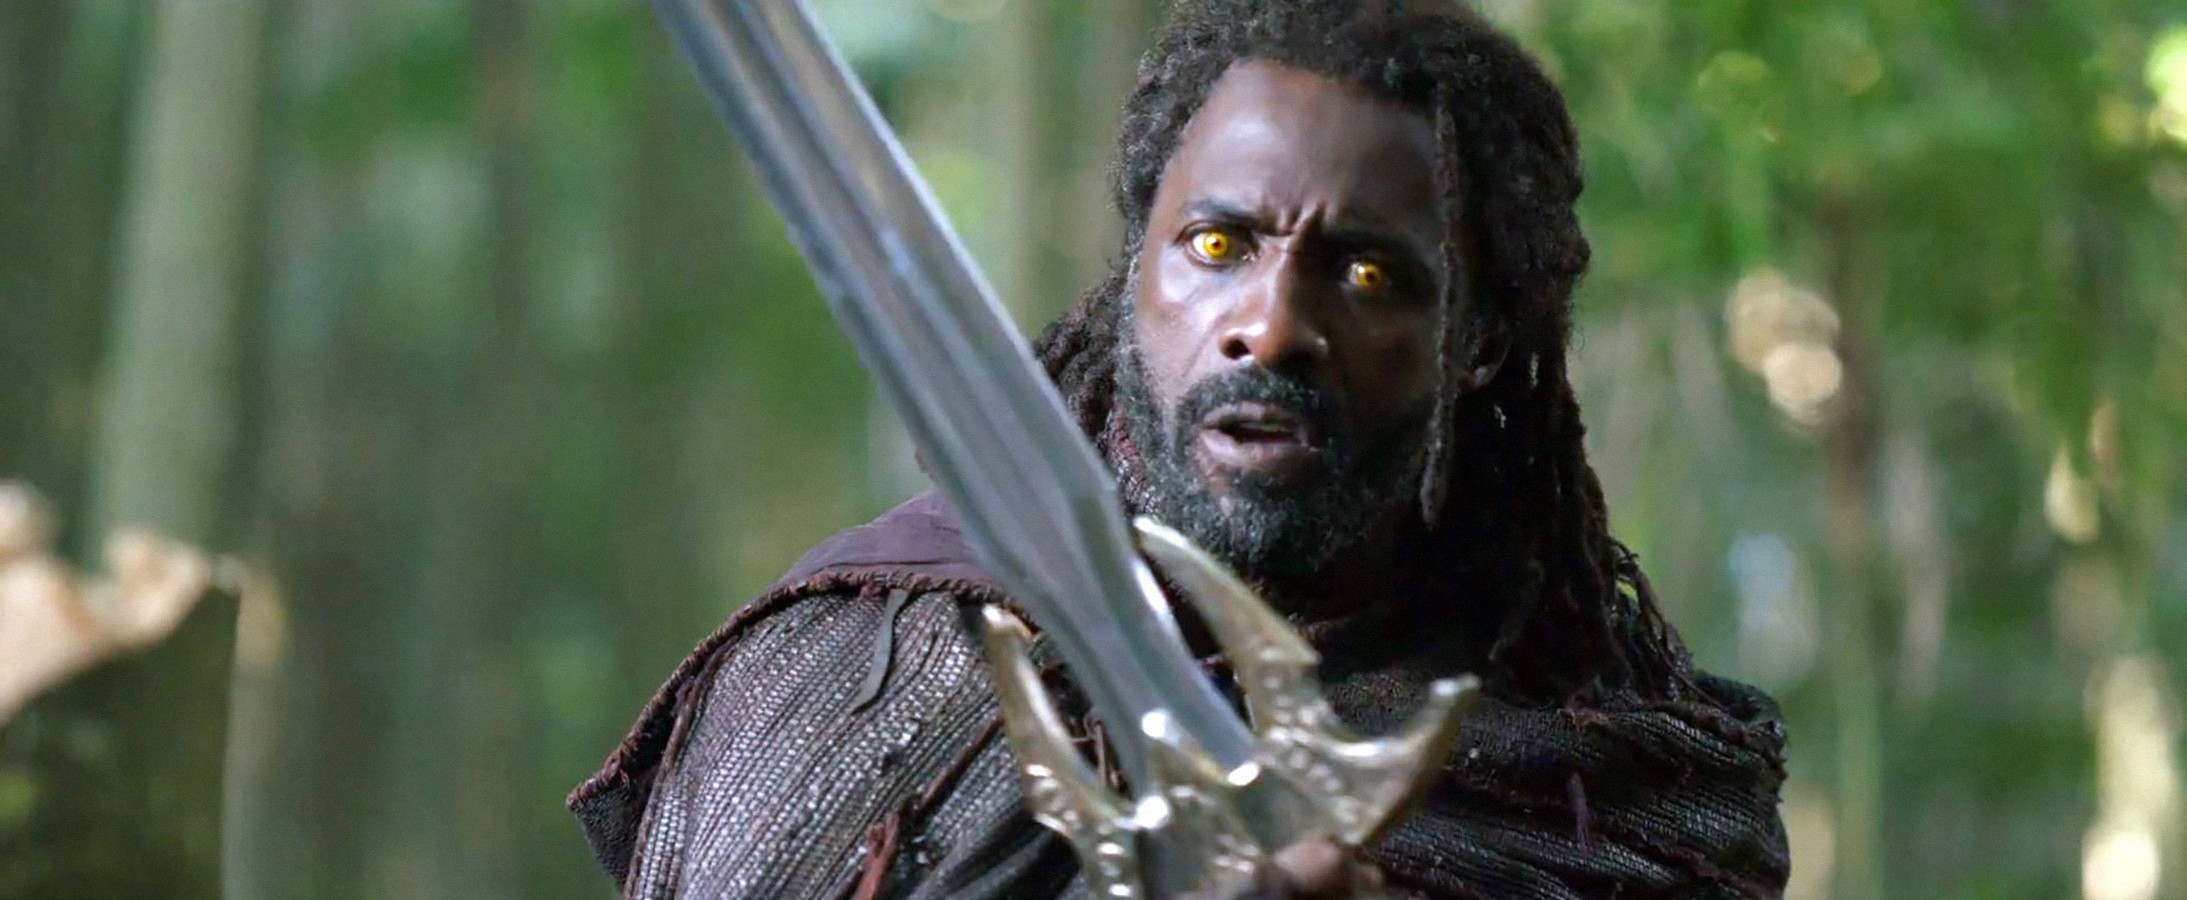 Idris Elba To Turn Villainous In Fast And Furious Spin Off Heres Here39s How Wire Update Recent Years Weve Become Accustomed Seeing Heroic Roles As Thor Ragnarok Above So Its Somewhat Surprising Hear